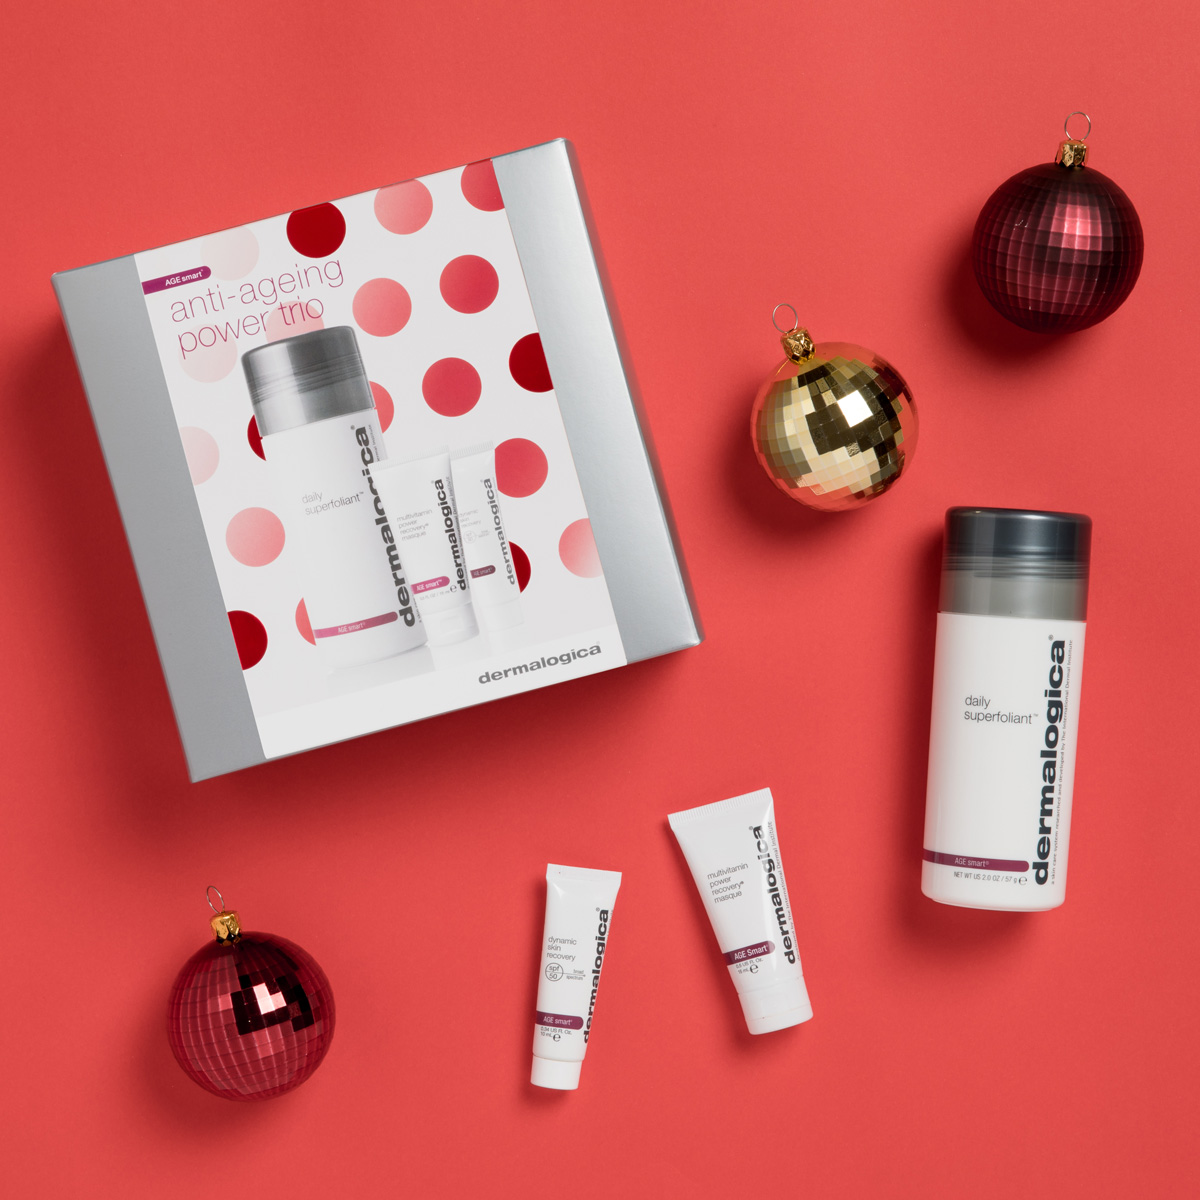 2017-Collection-Dermalogica-AntiAgeing-Flatlay-01.jpg